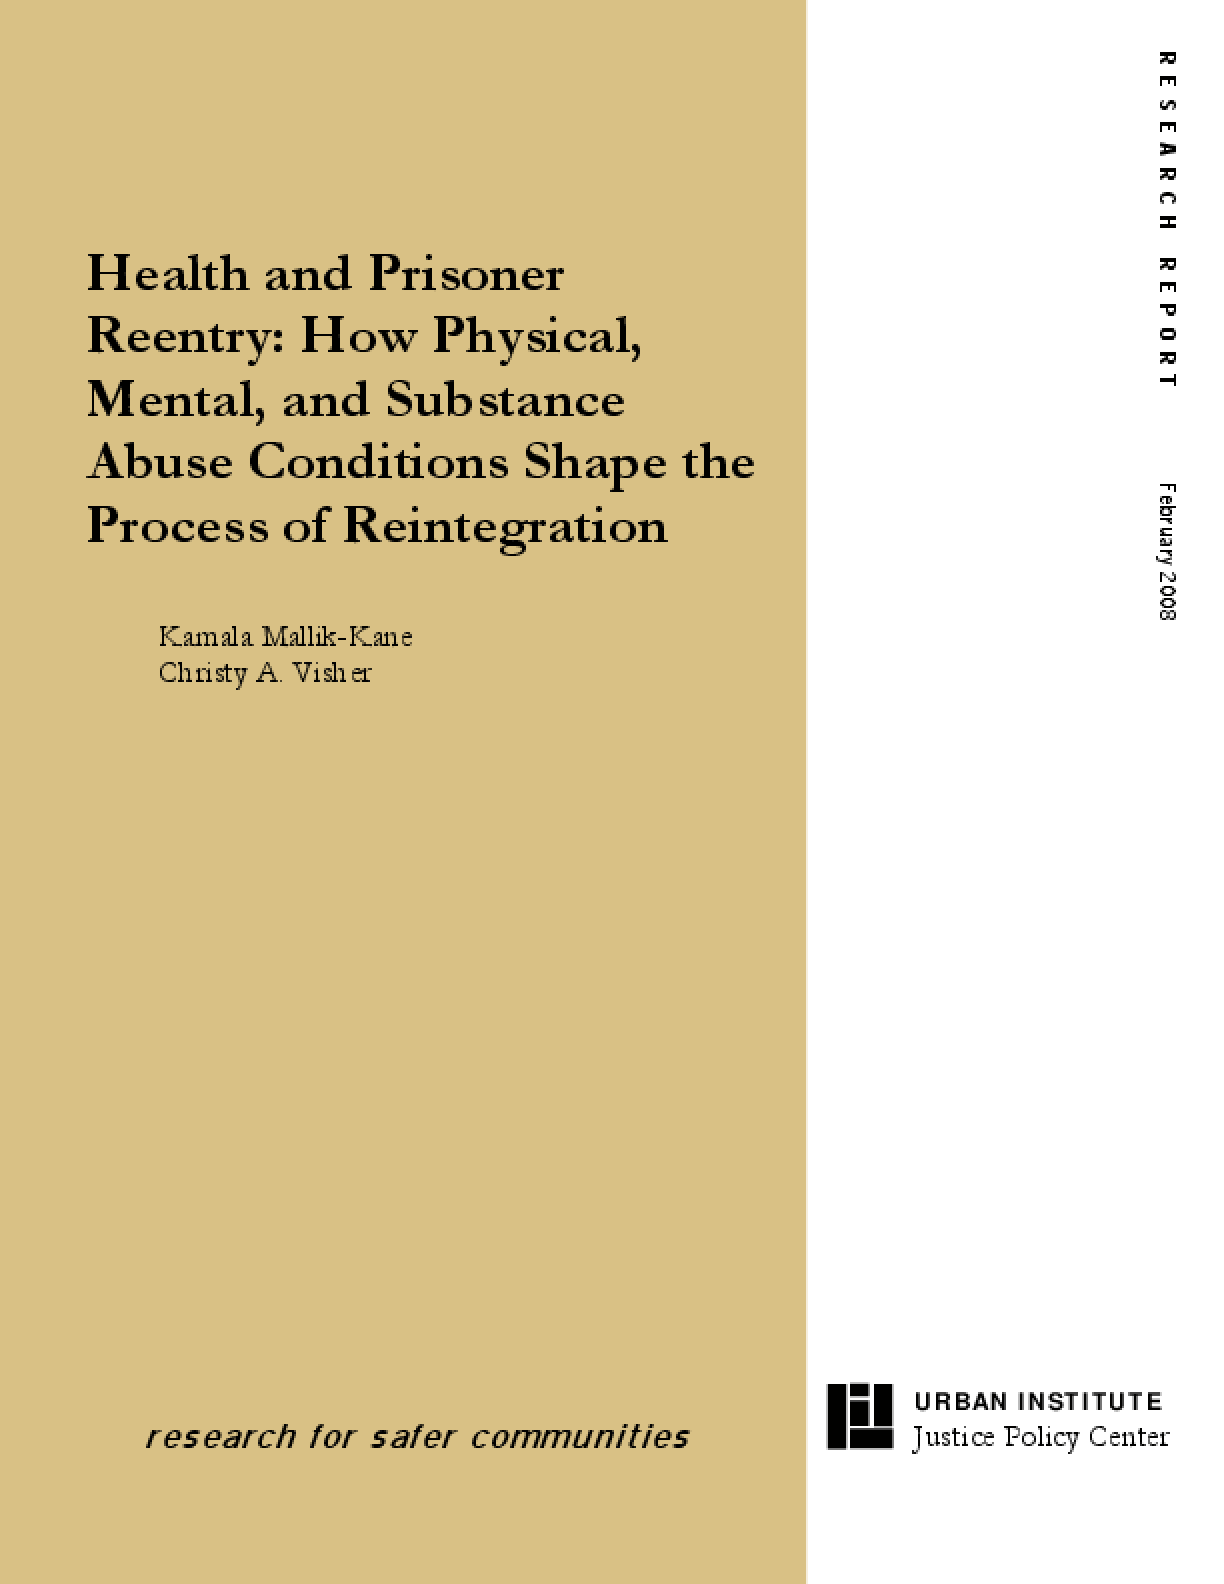 Health and Prisoner Reentry: How Physical, Mental, and Substance Abuse Conditions Shape the Process of Reintegration